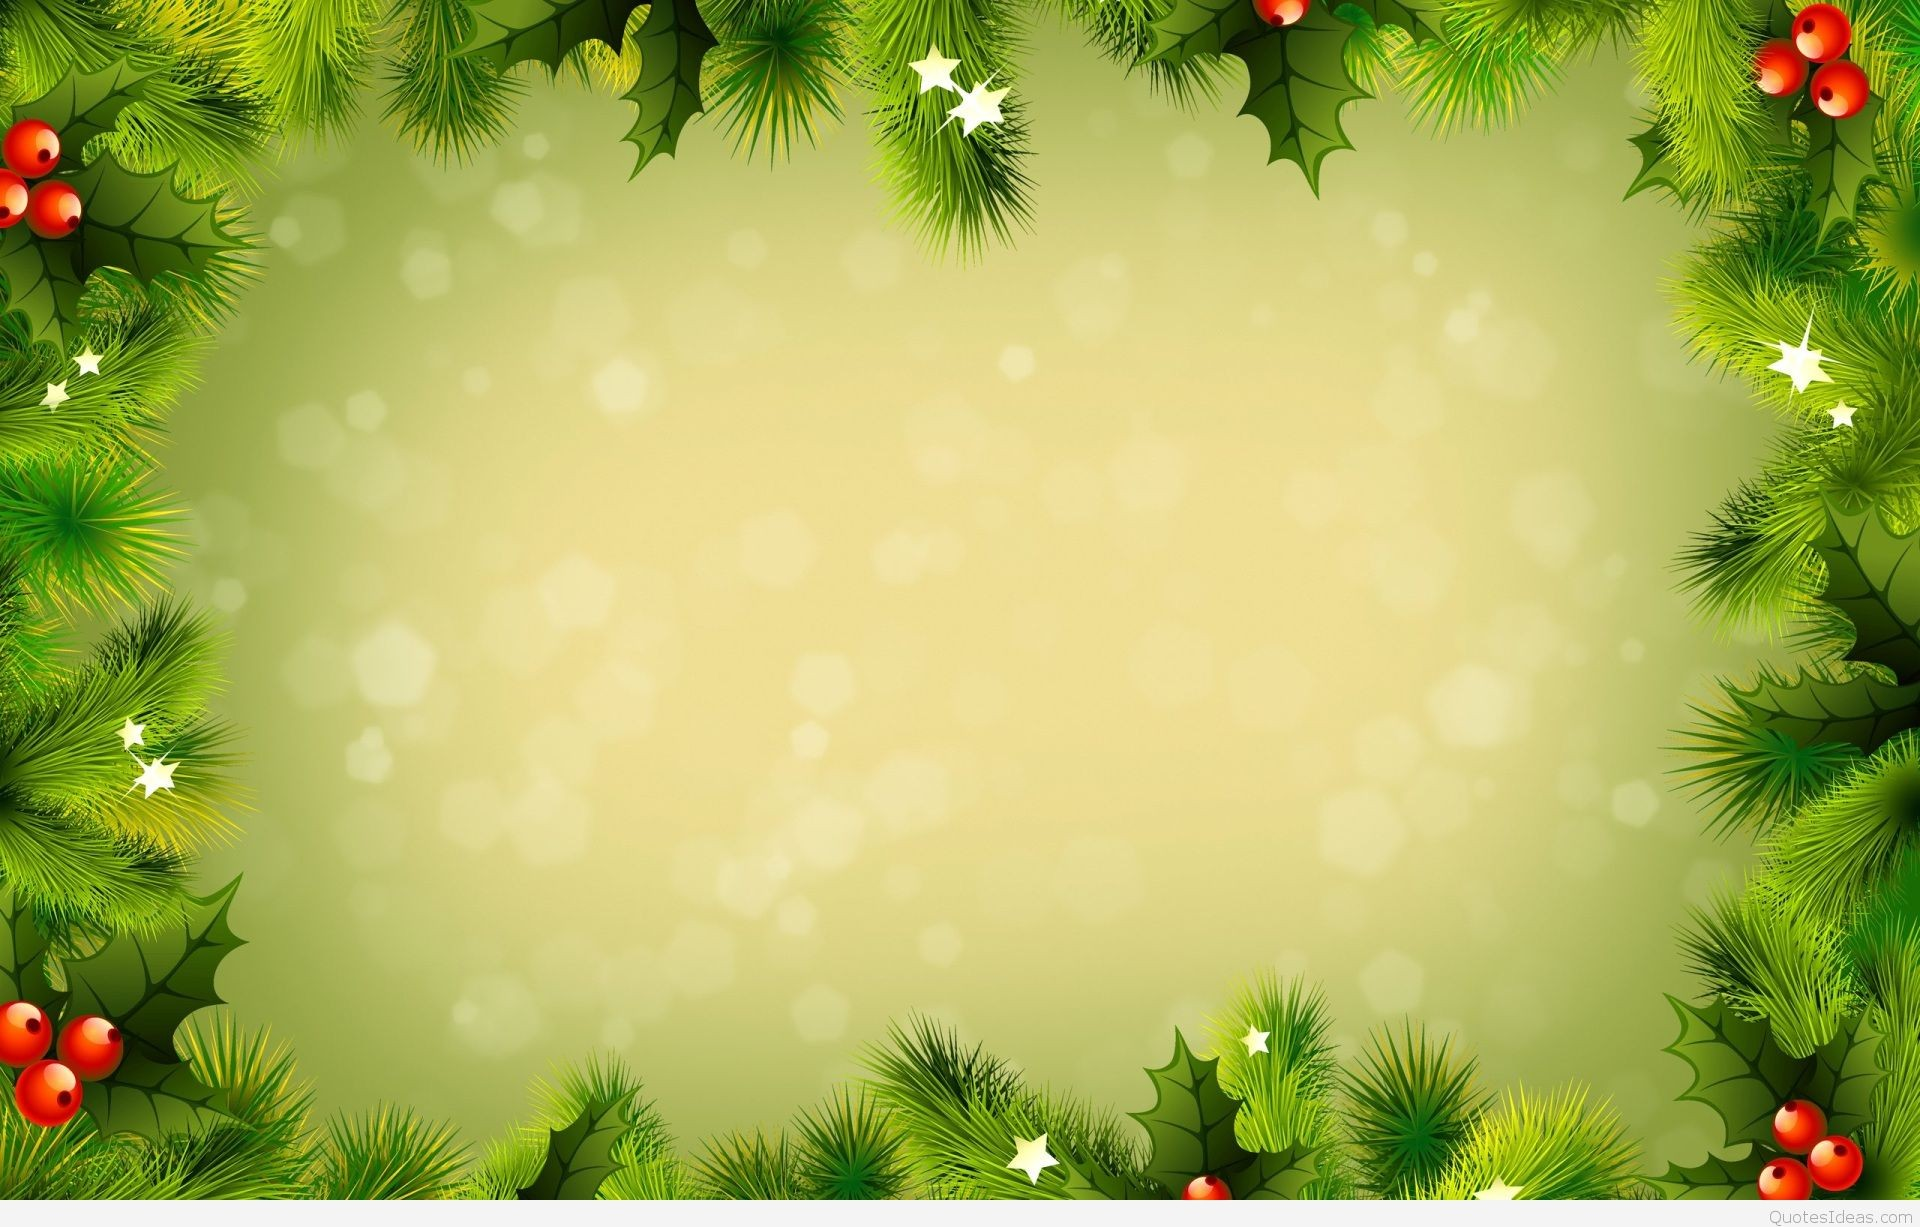 Christmas Ipad Backgrounds Free: Christmas Background Tumblr ·① Download Free Wallpapers